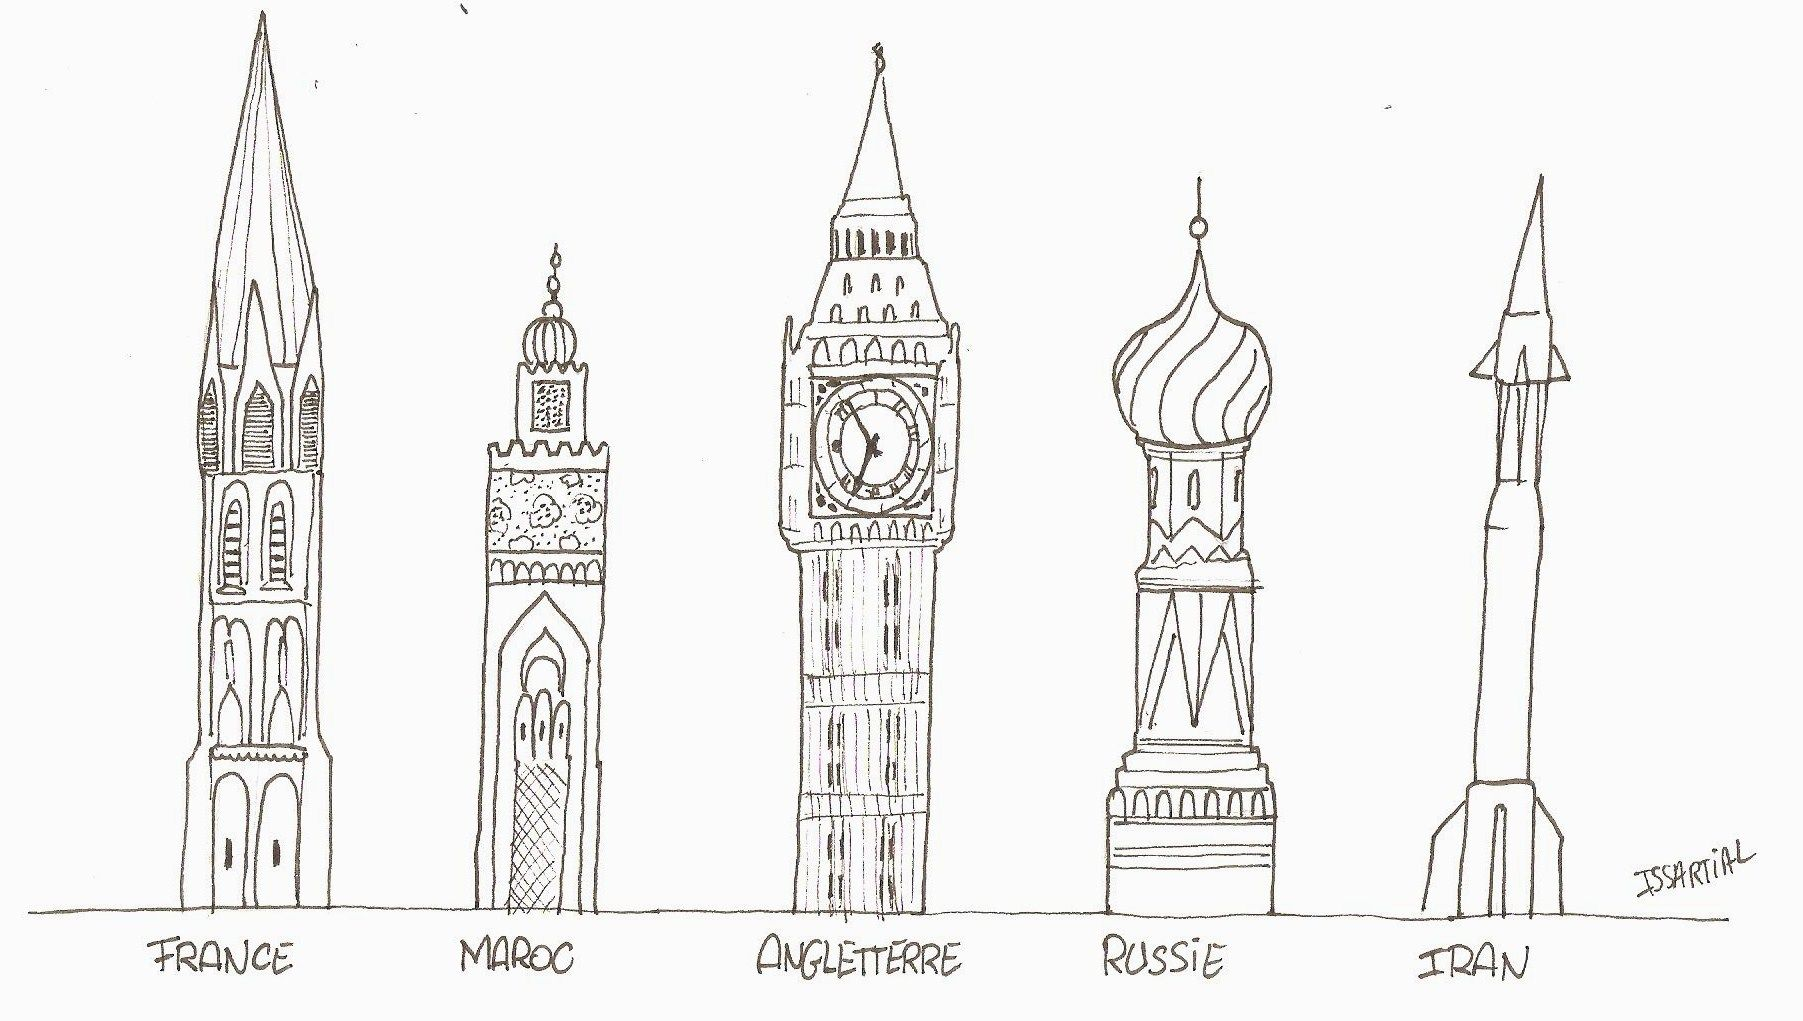 structural architectural motifs - Google Search | Mosque, Spires, Building